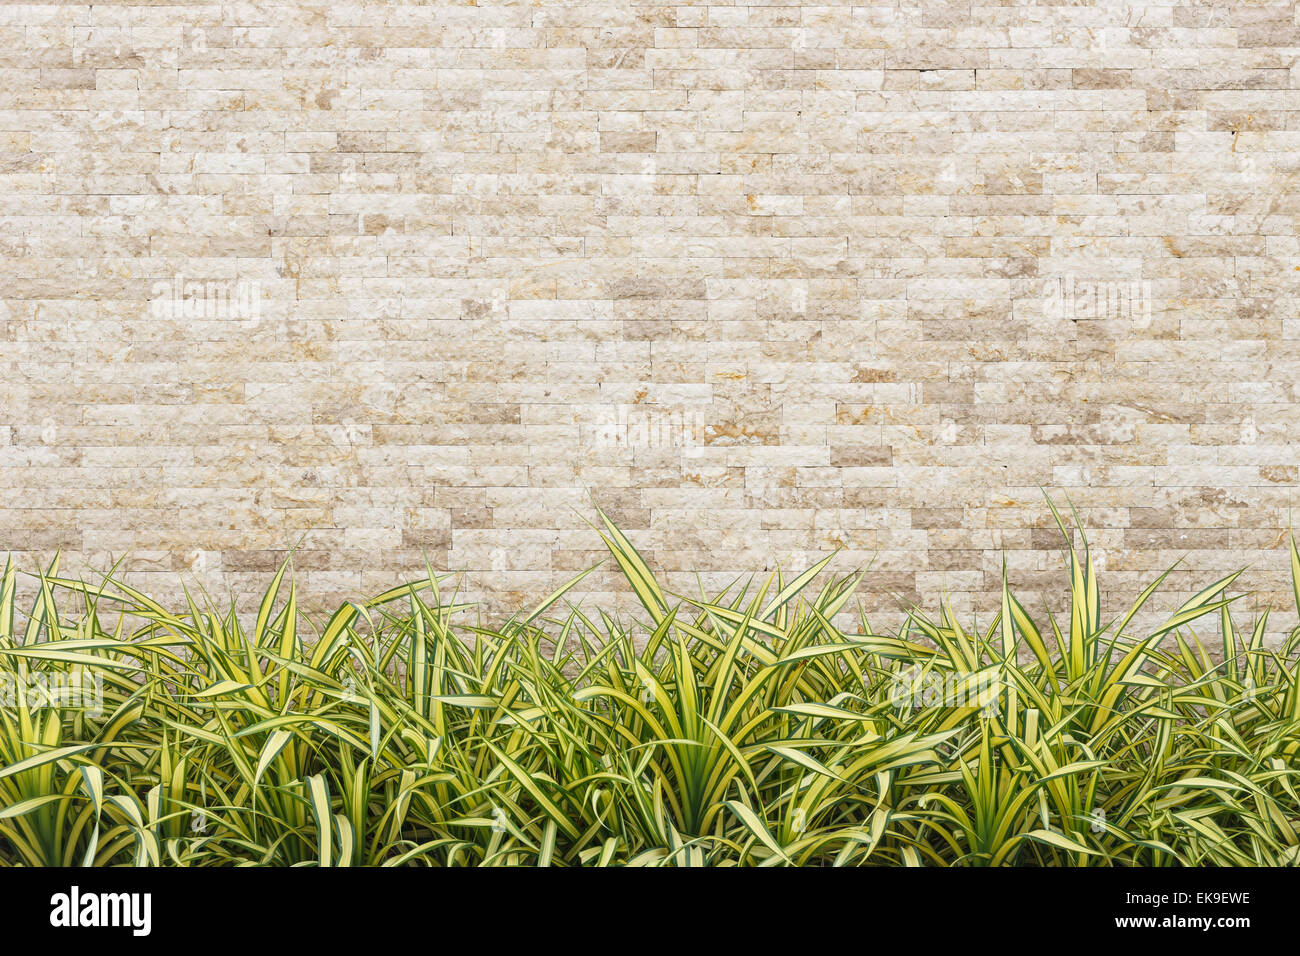 travertine stone wall and decorative garden stock photo, royalty